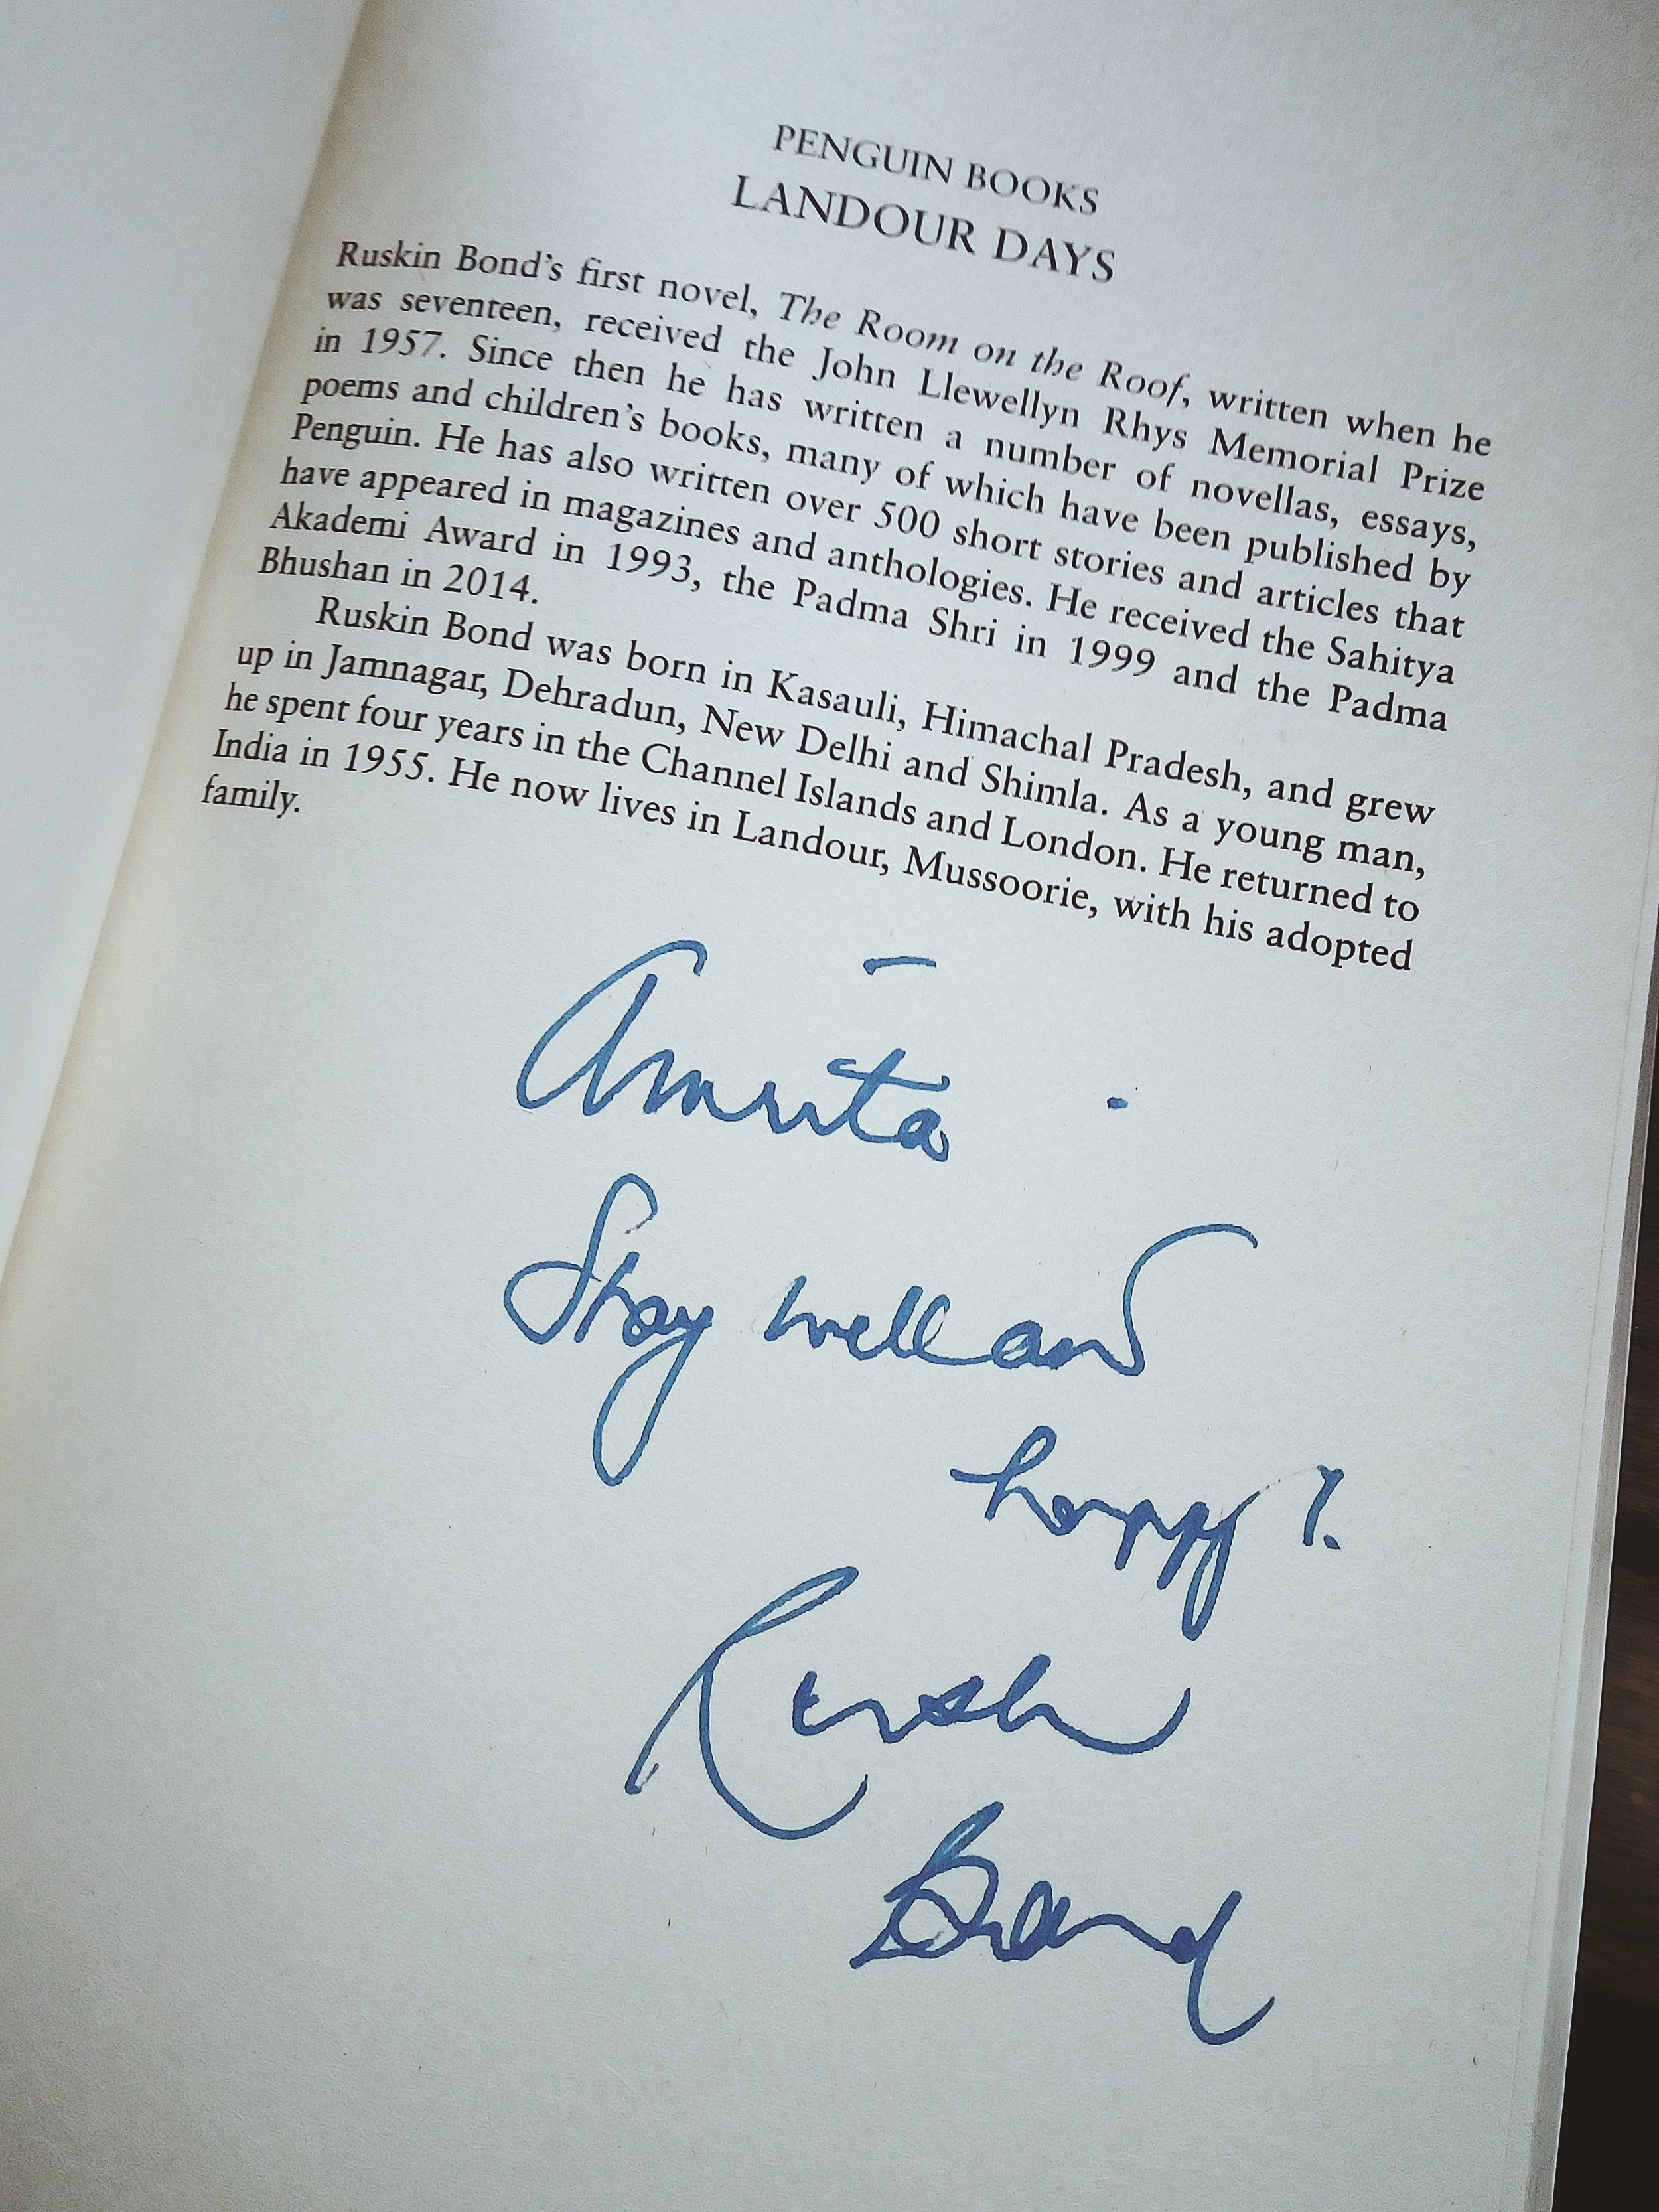 Ruskin Bond's autographed note to the author.